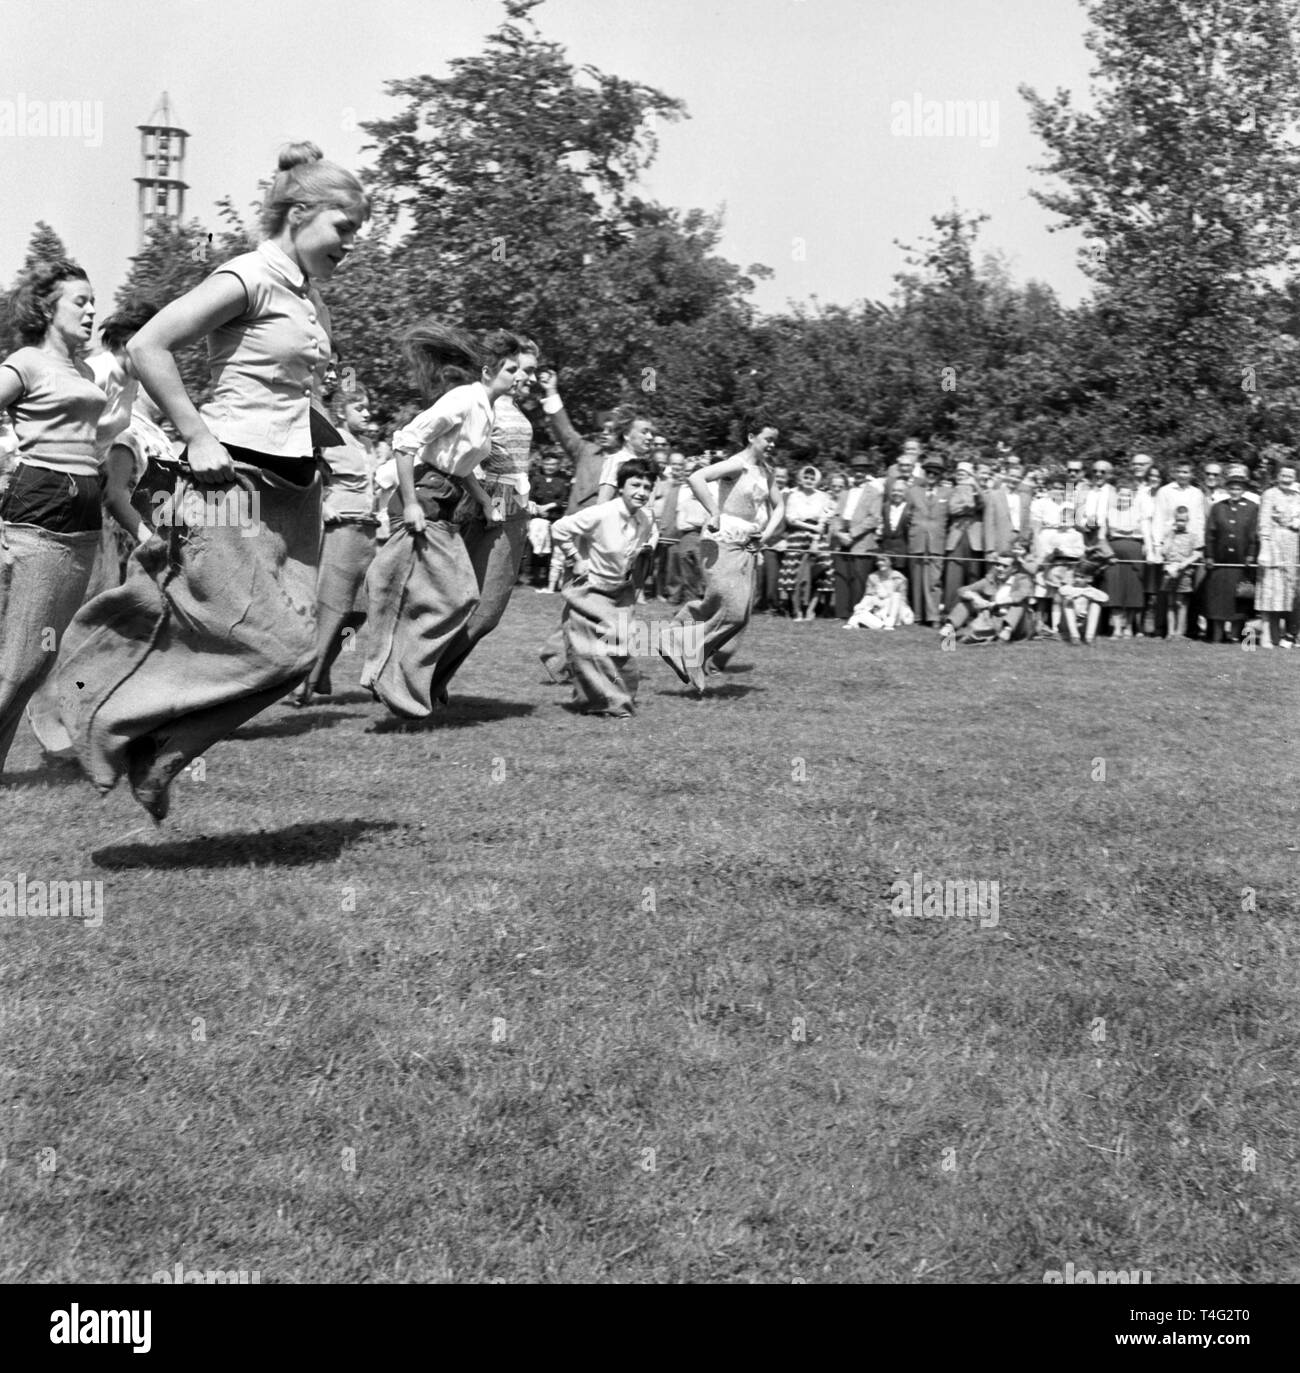 On the Open Day on 10 May 1959, young people from Berlin could go head-to-head in a sack race. Dagmar Kettner was the winner. | usage worldwide - Stock Image